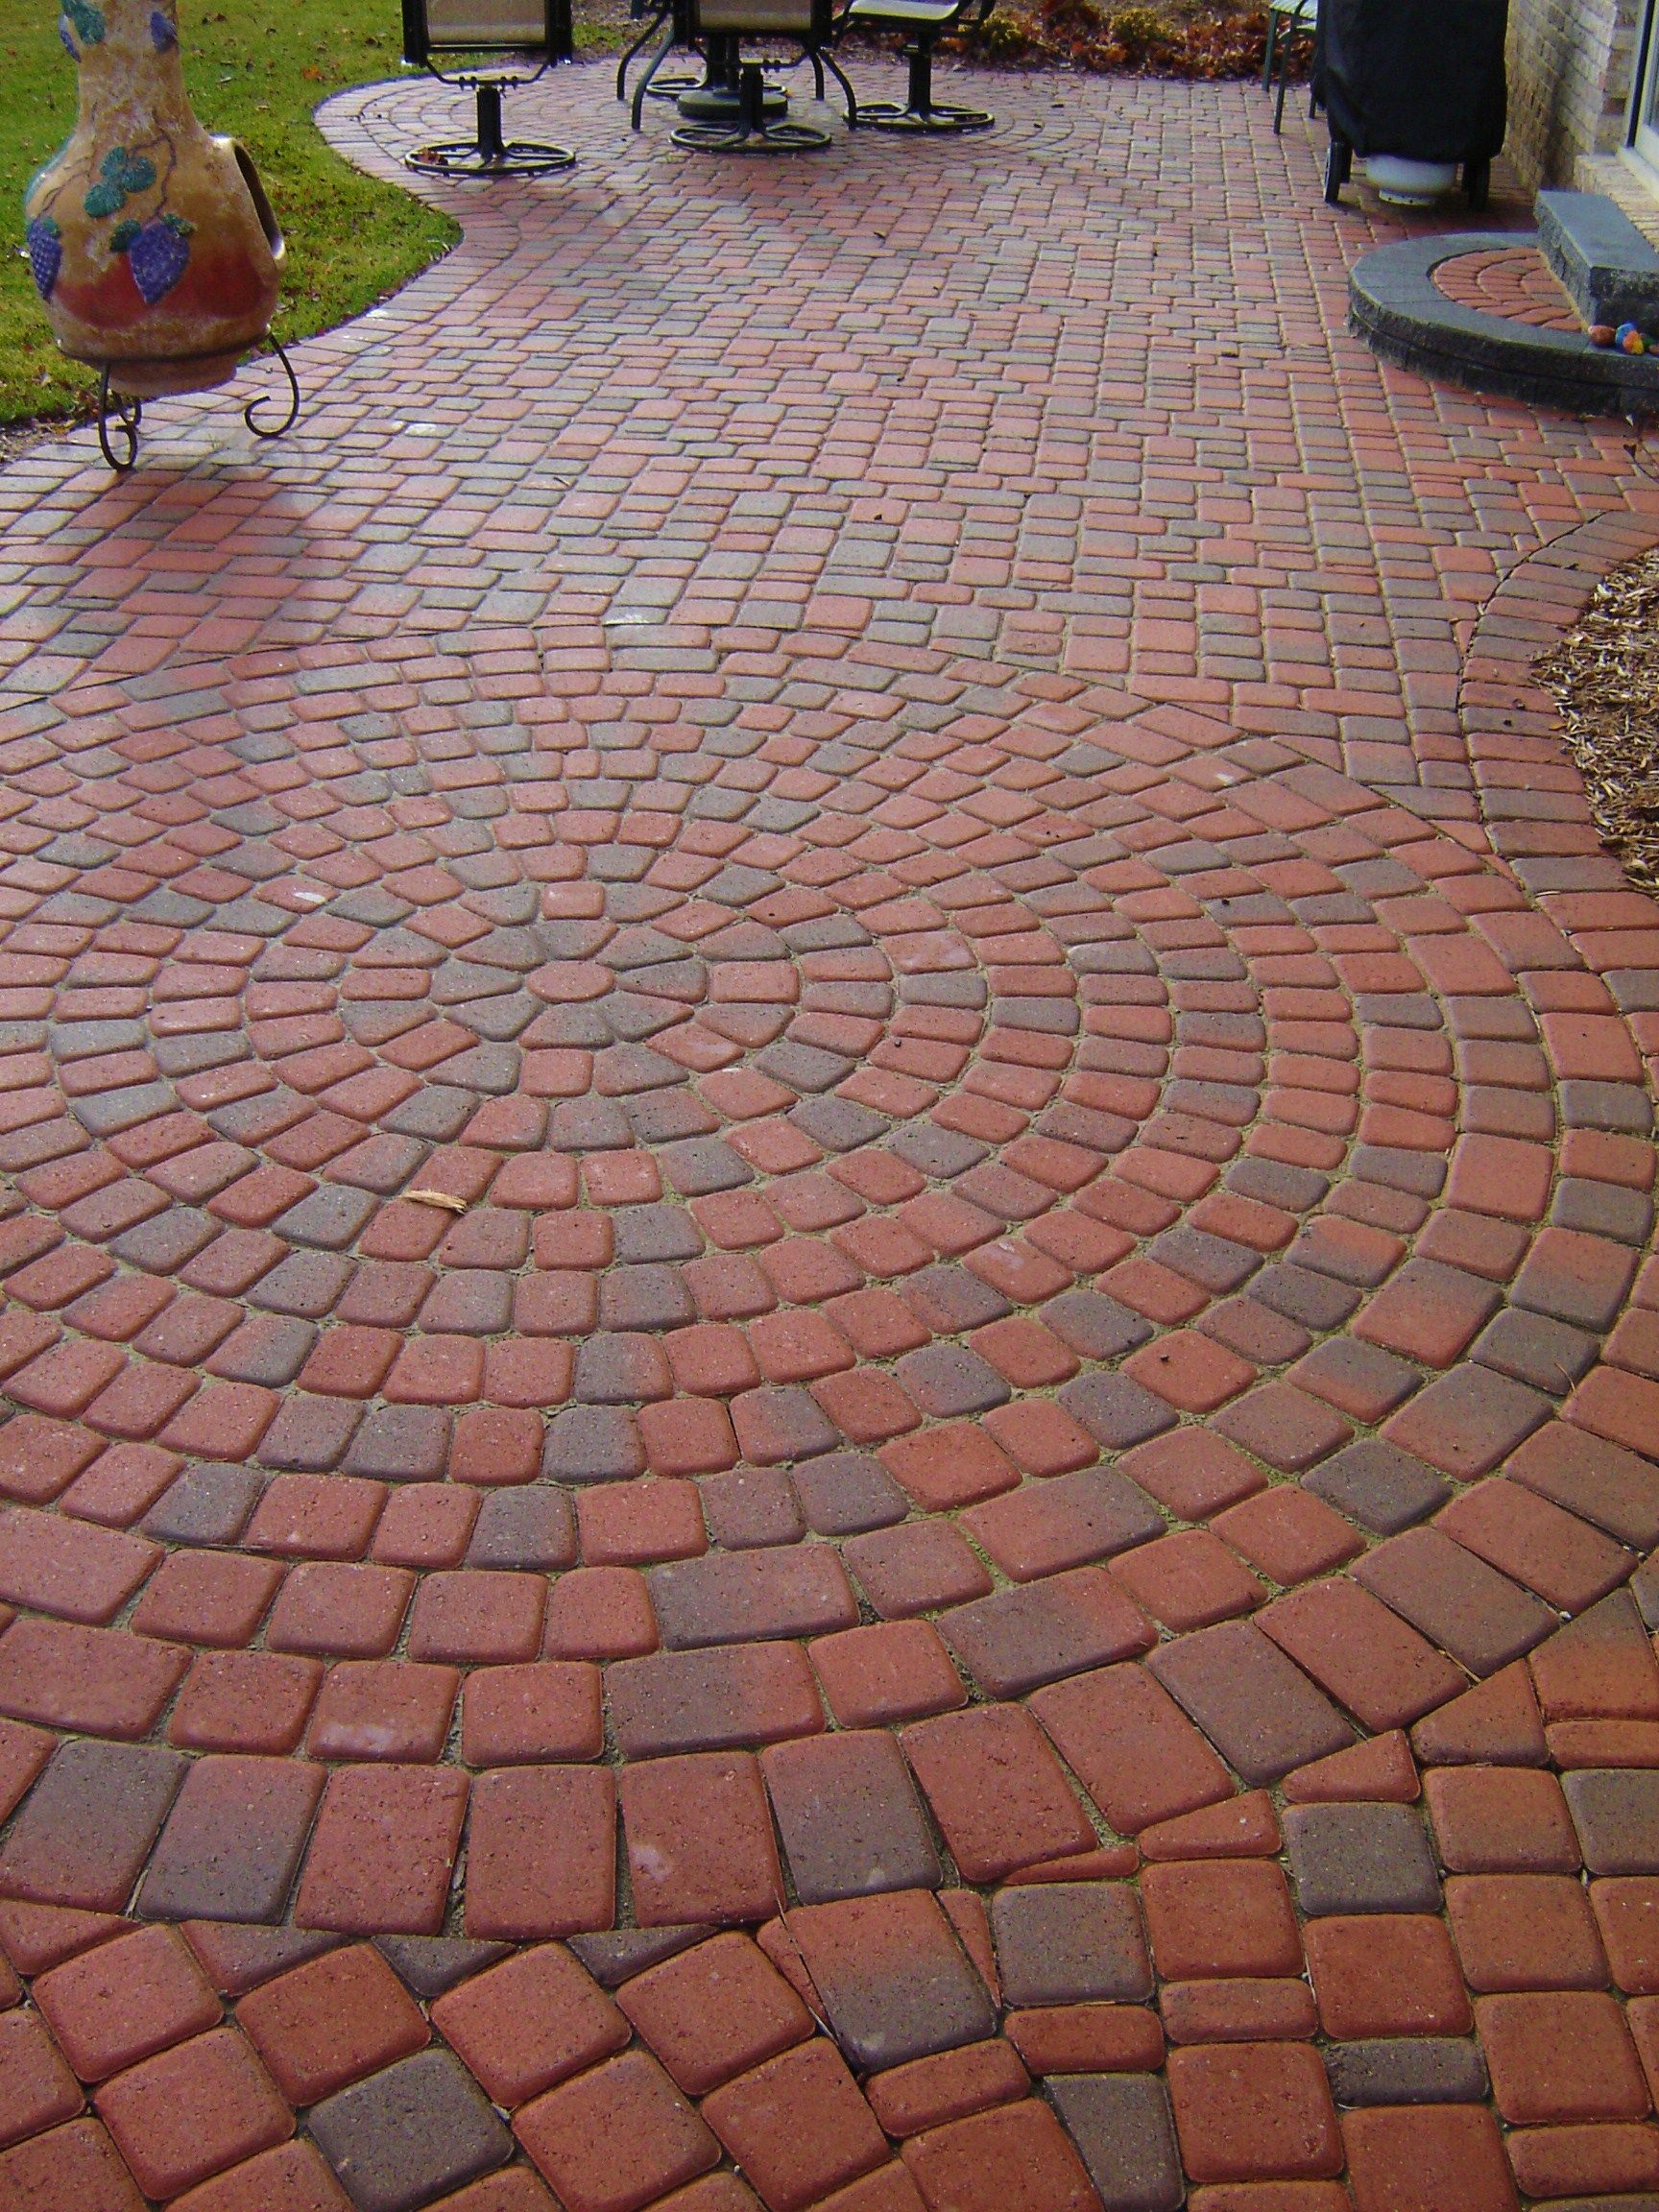 Old Greenwich Cobble brick paver circle patio and steps in ... on Red Paver Patio Ideas id=84637